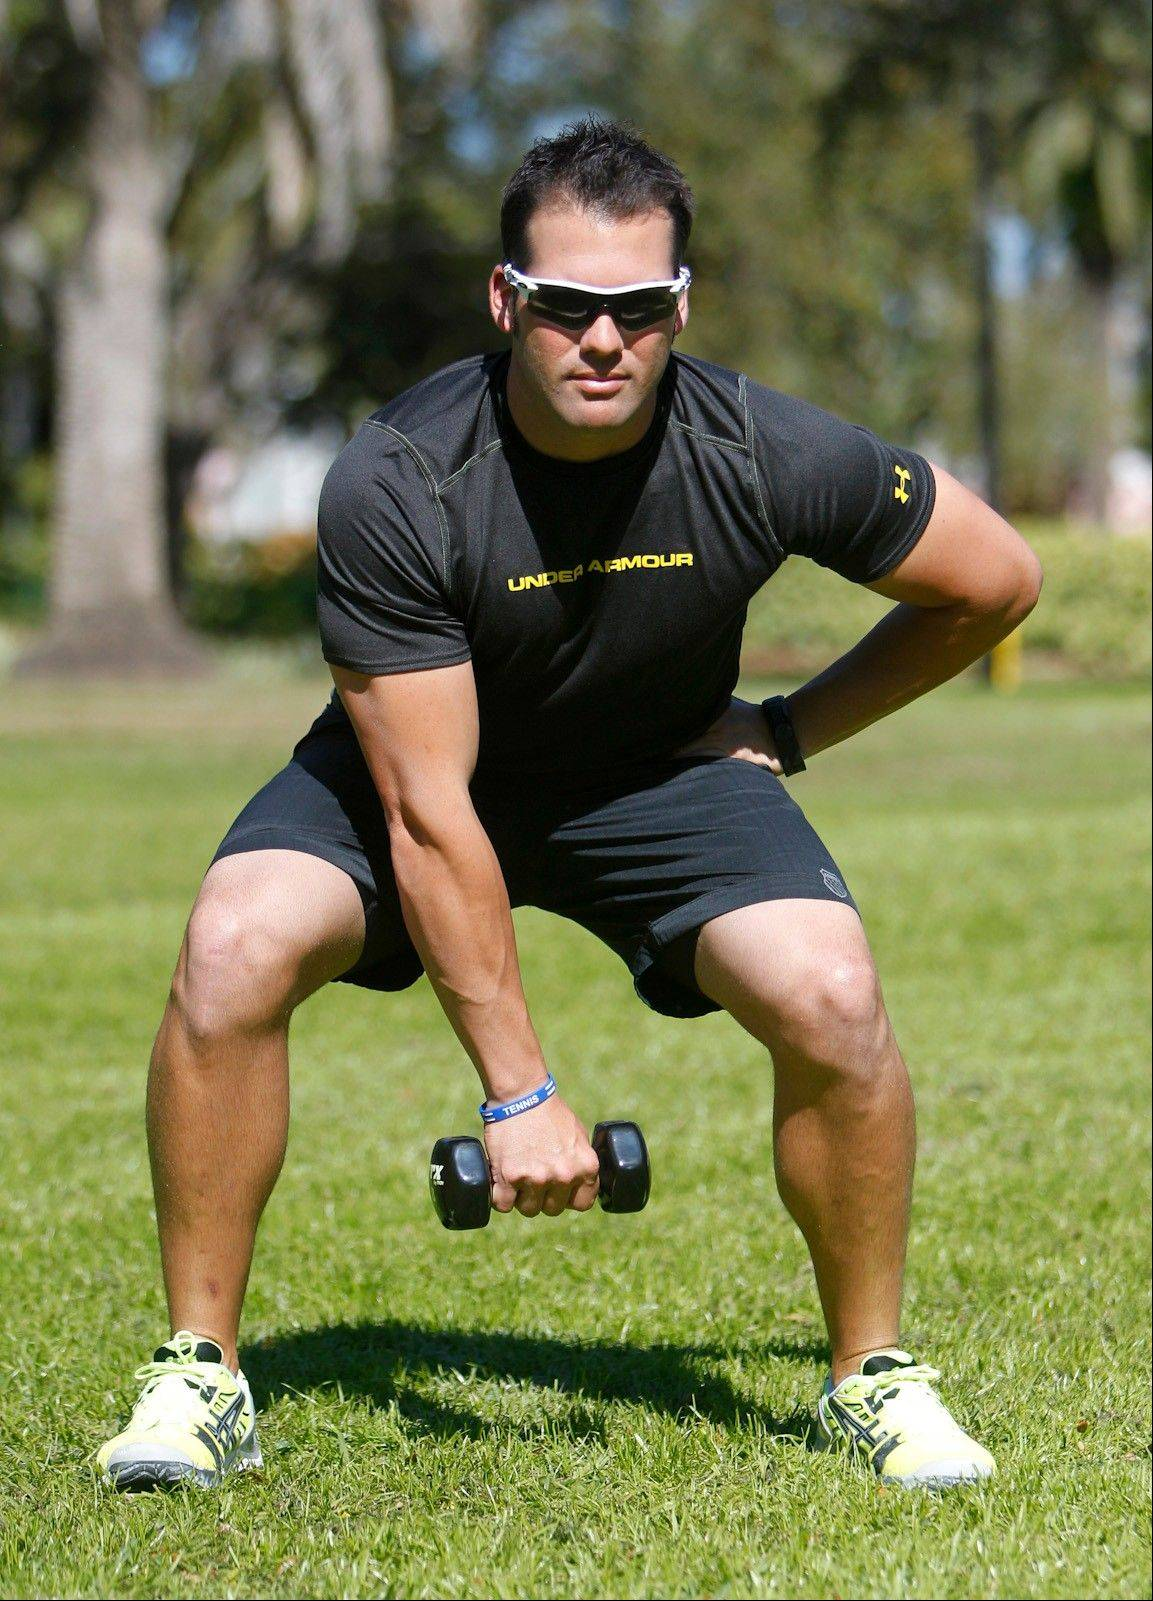 A squat and single-arm swing works the thighs, hips, glutes, back, arms, shoulders and core.